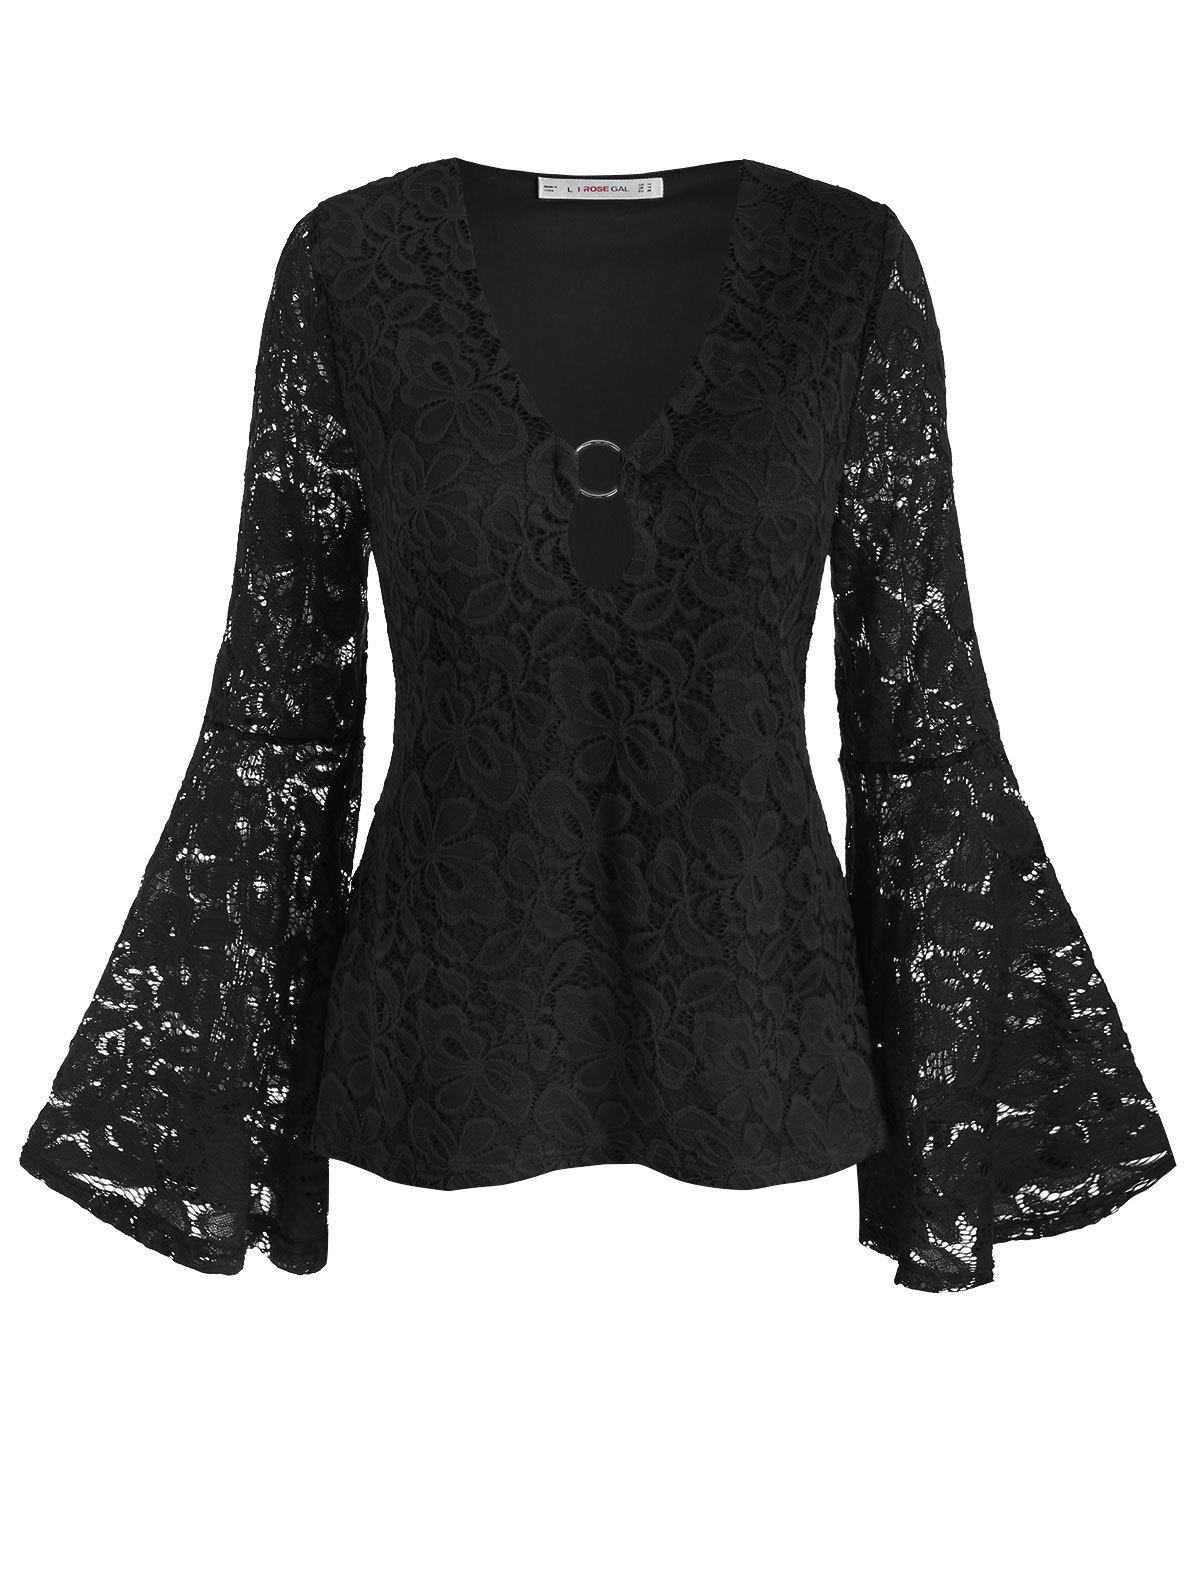 Plus Size O Ring Bell Sleeve Lace Blouse - BLACK 5X